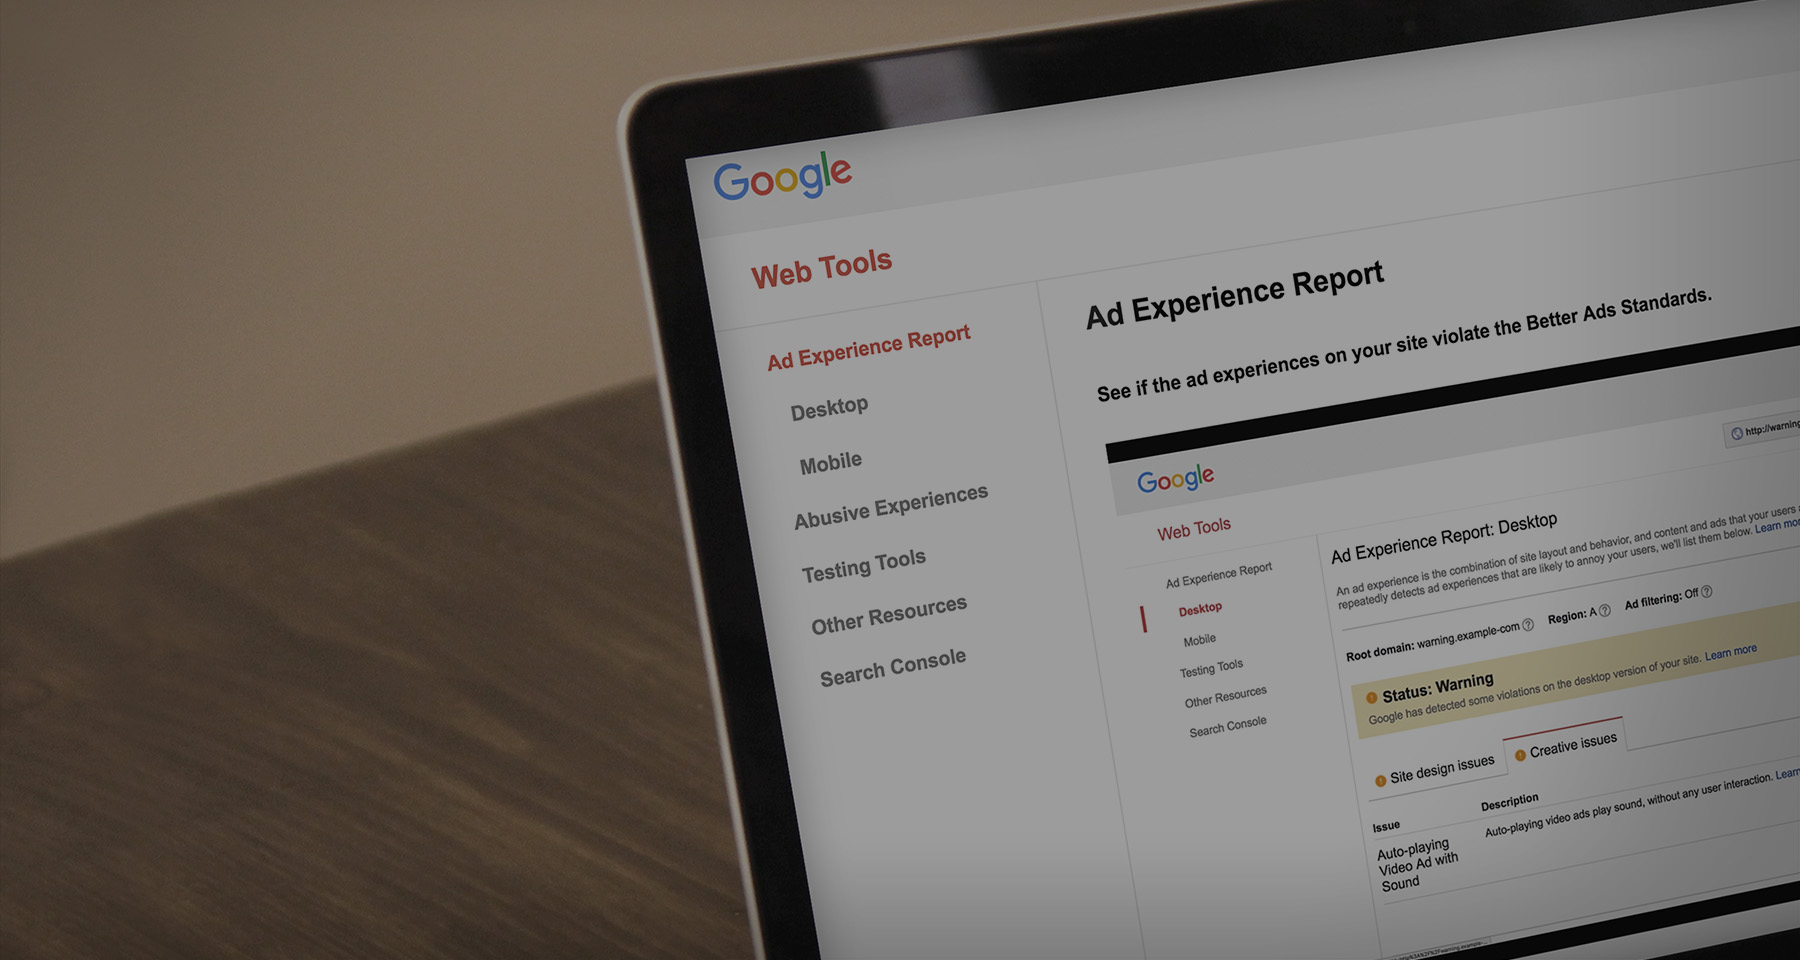 Google outlines initiatives to support better advertising standards